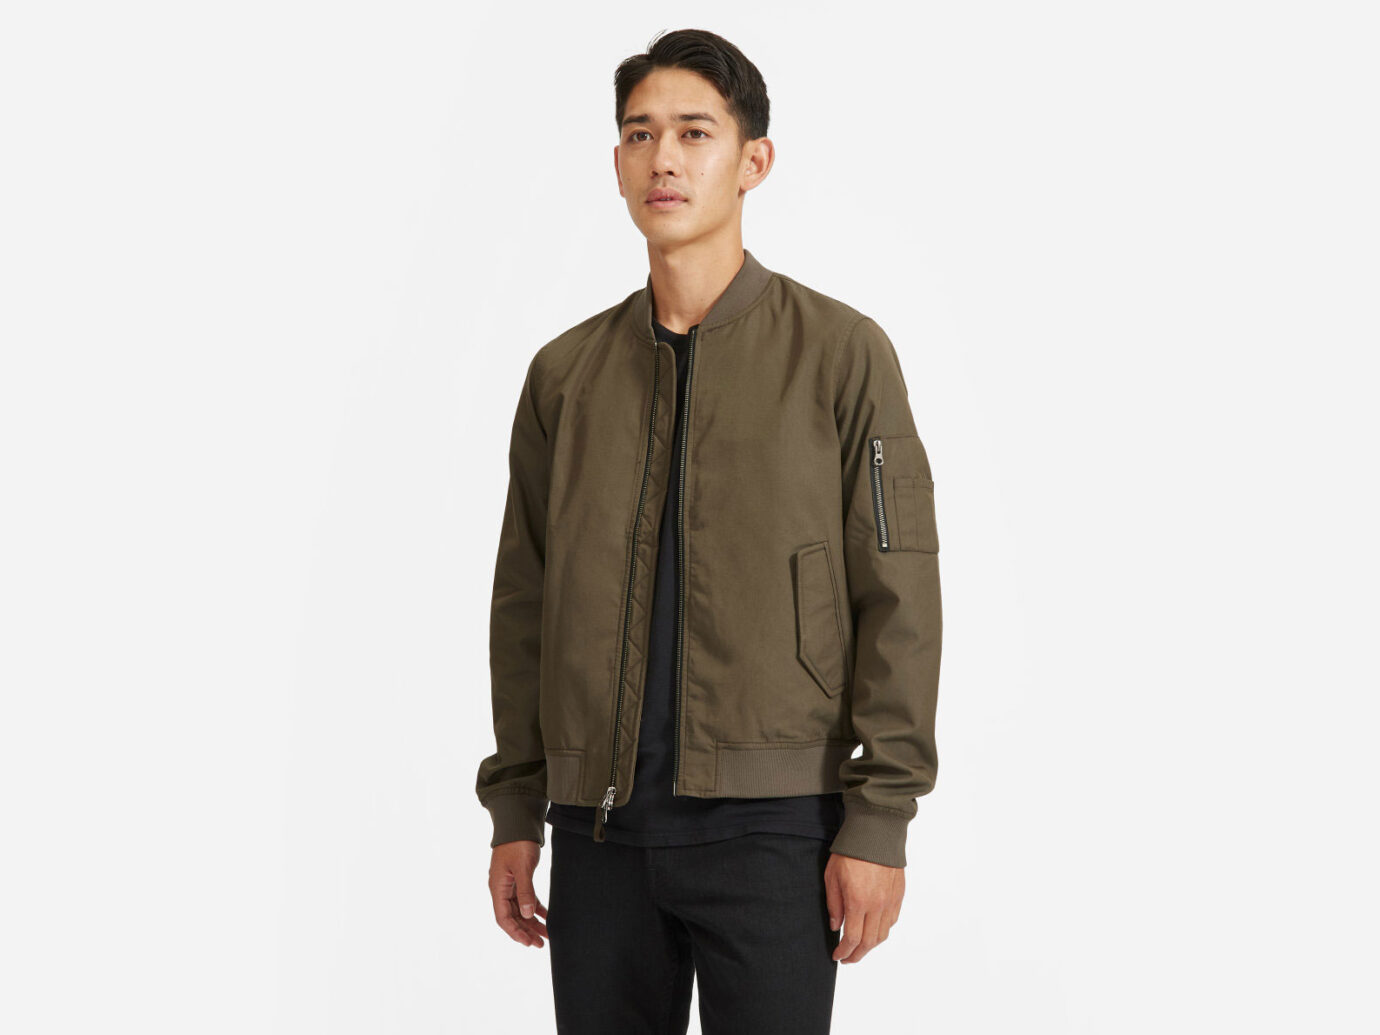 Everlane men's The Uniform Bomber Jacket